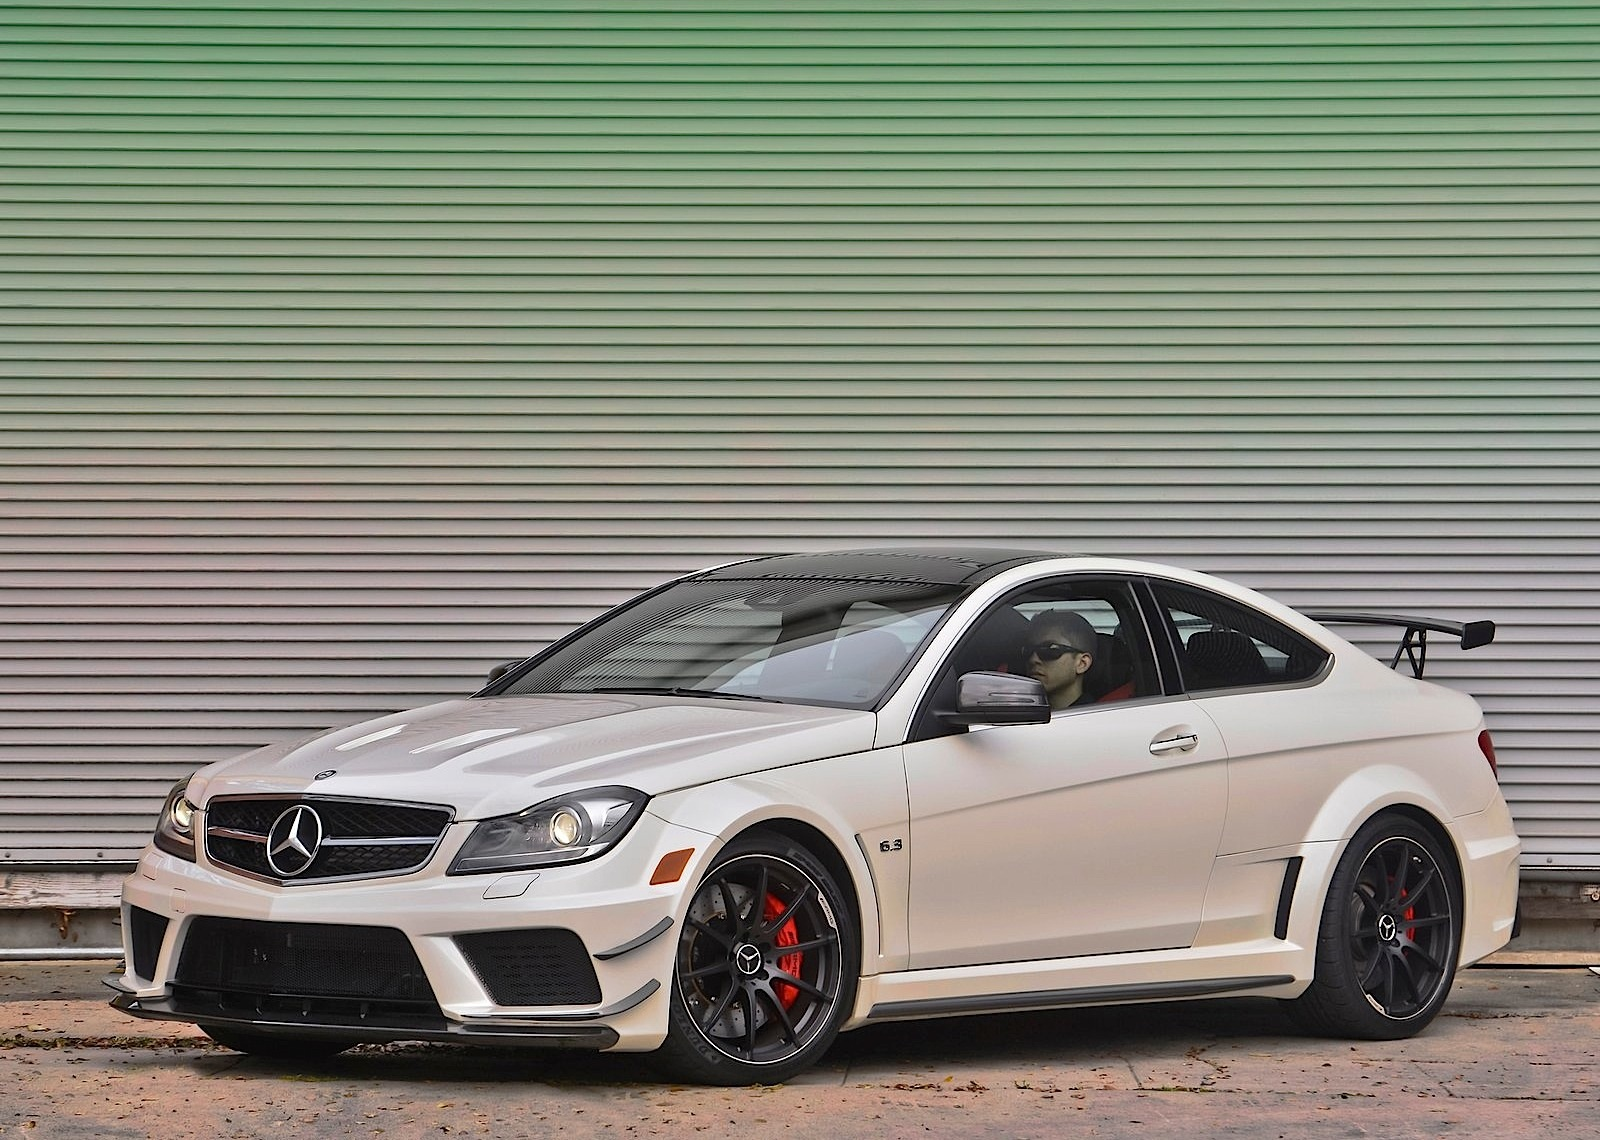 Mercedes c63 amg black series coupe price for Mercedes benz amg hatchback price